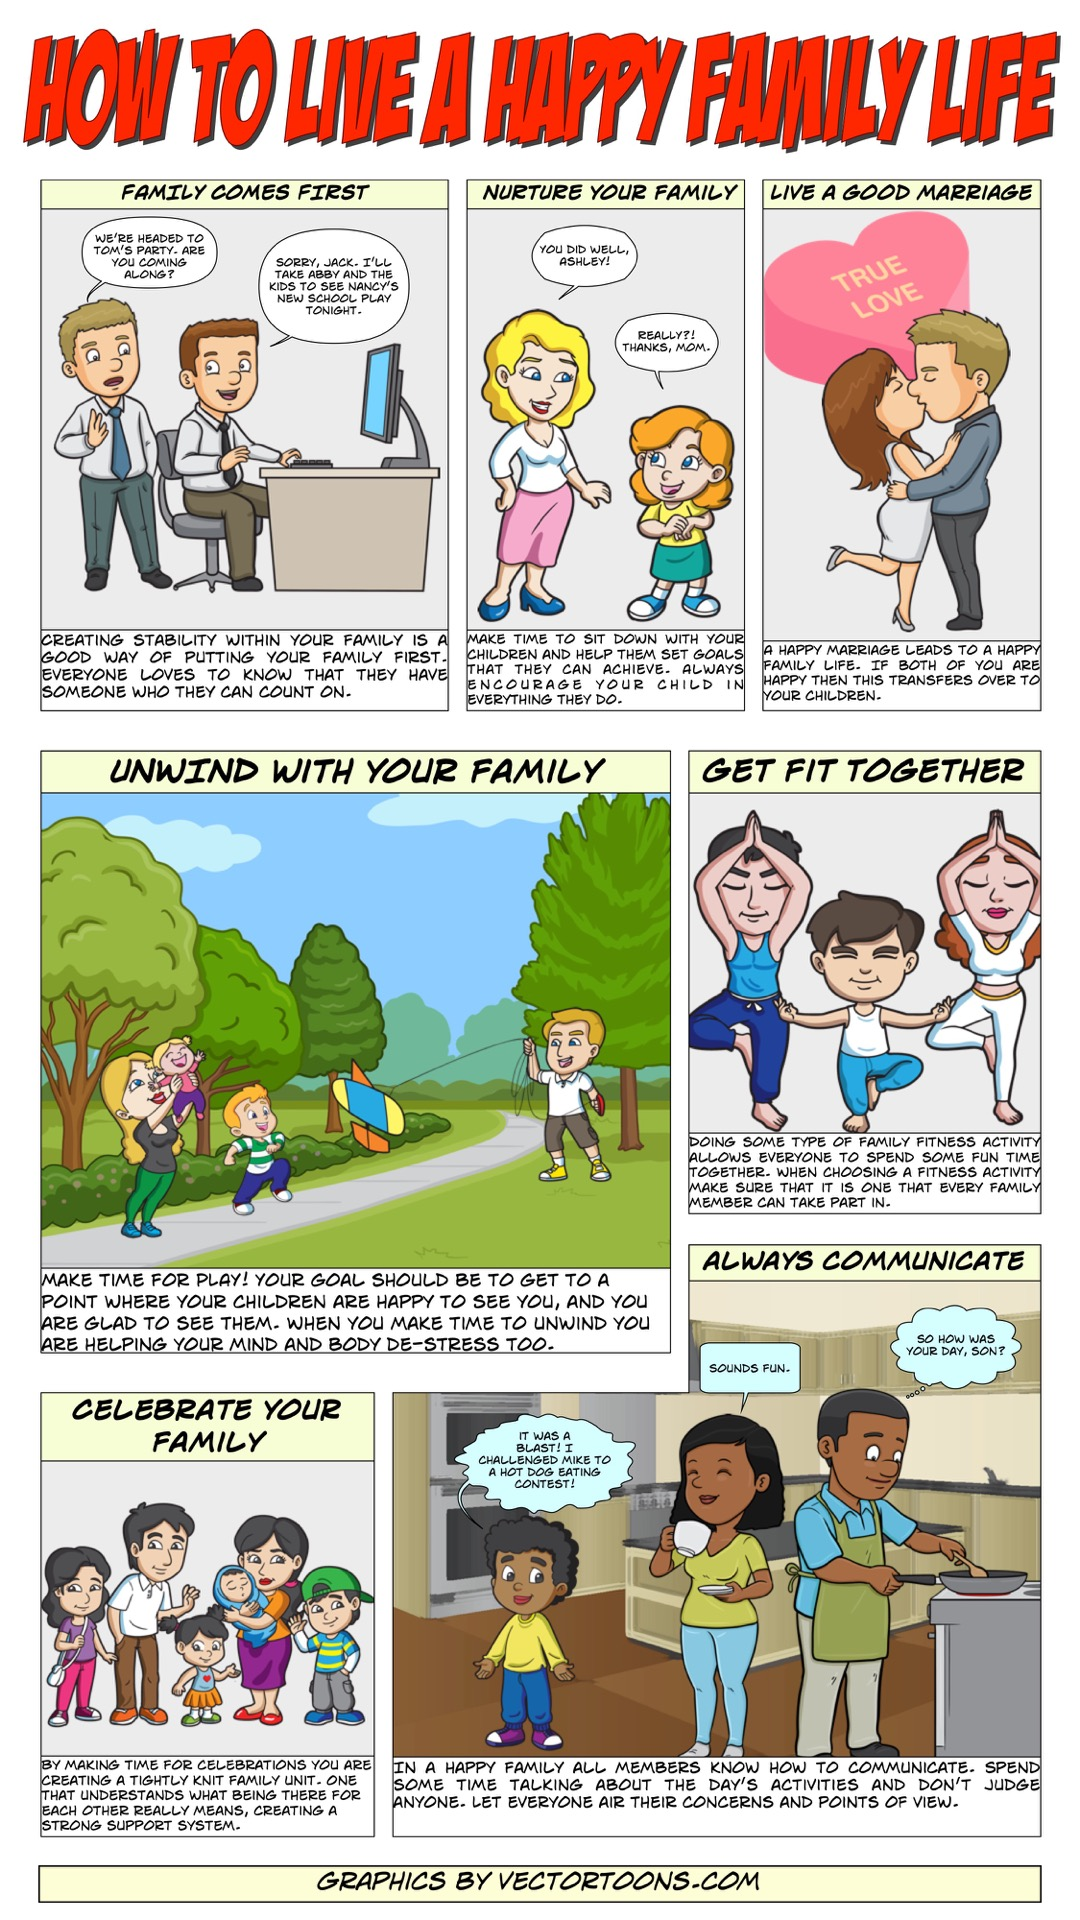 How To Live A Happy Family Life